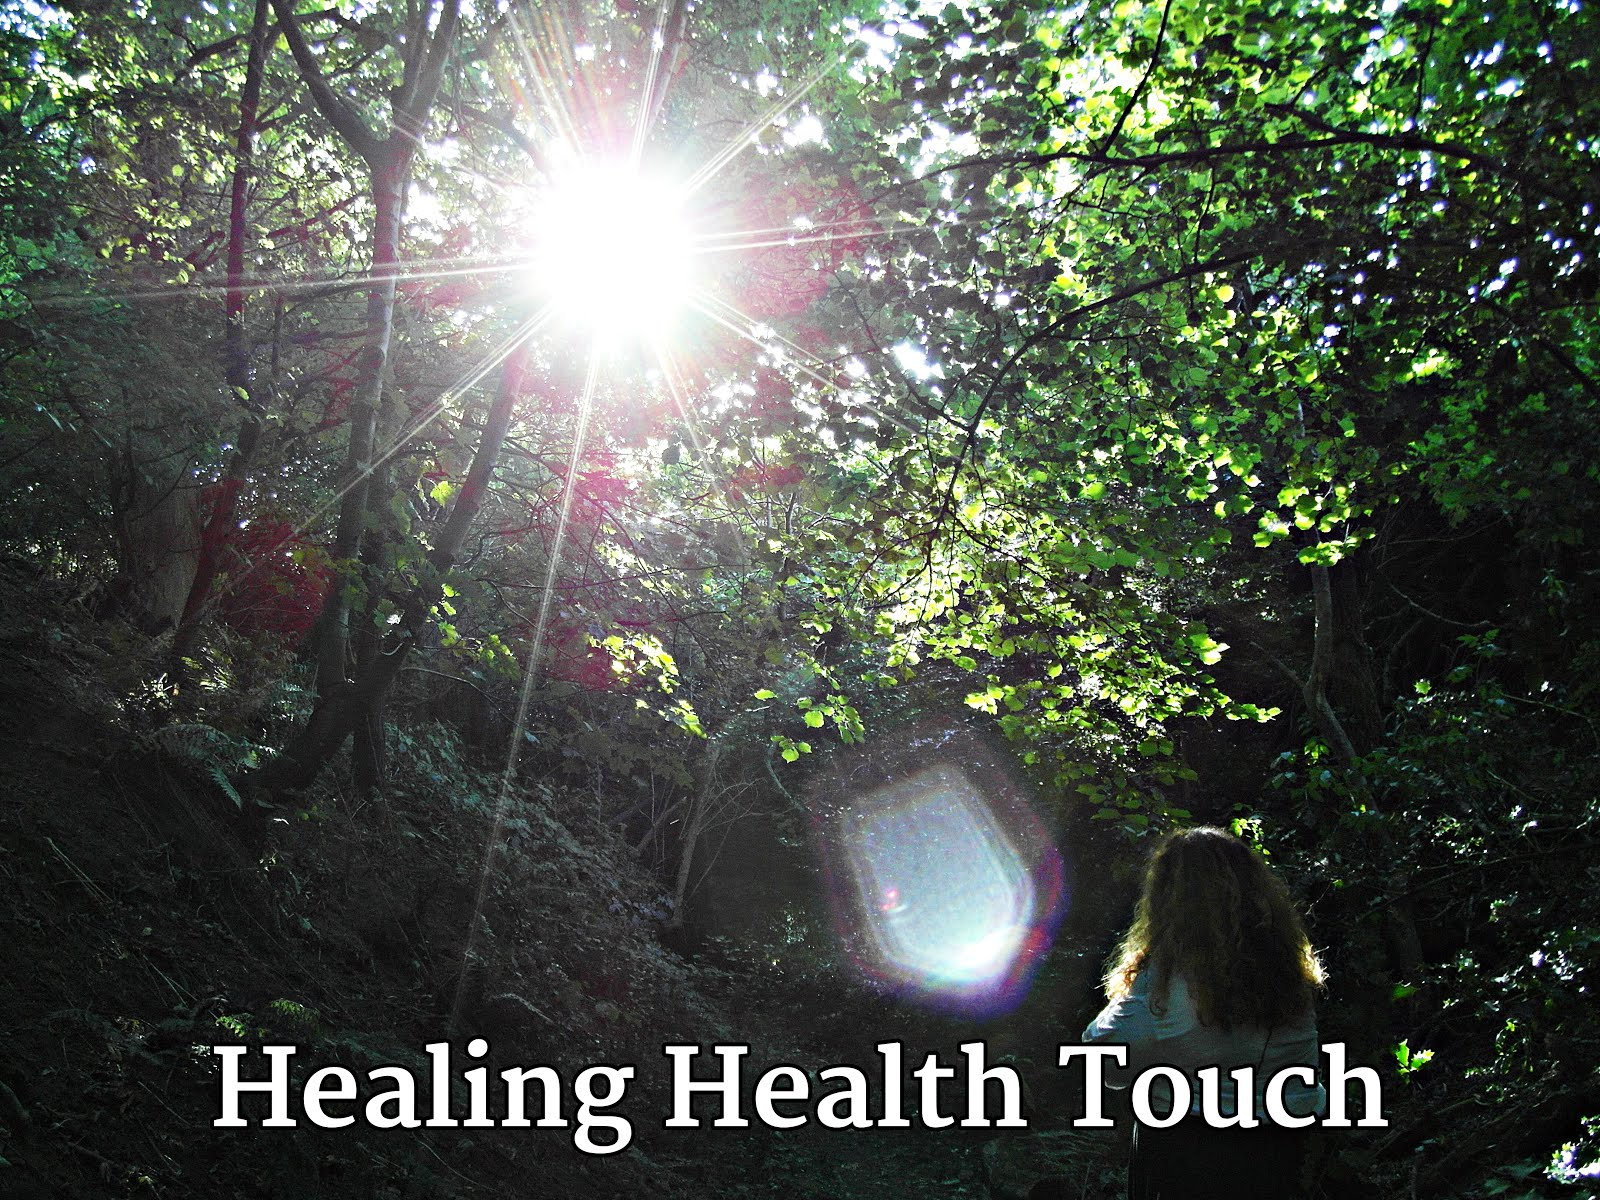 Healing Health Touch